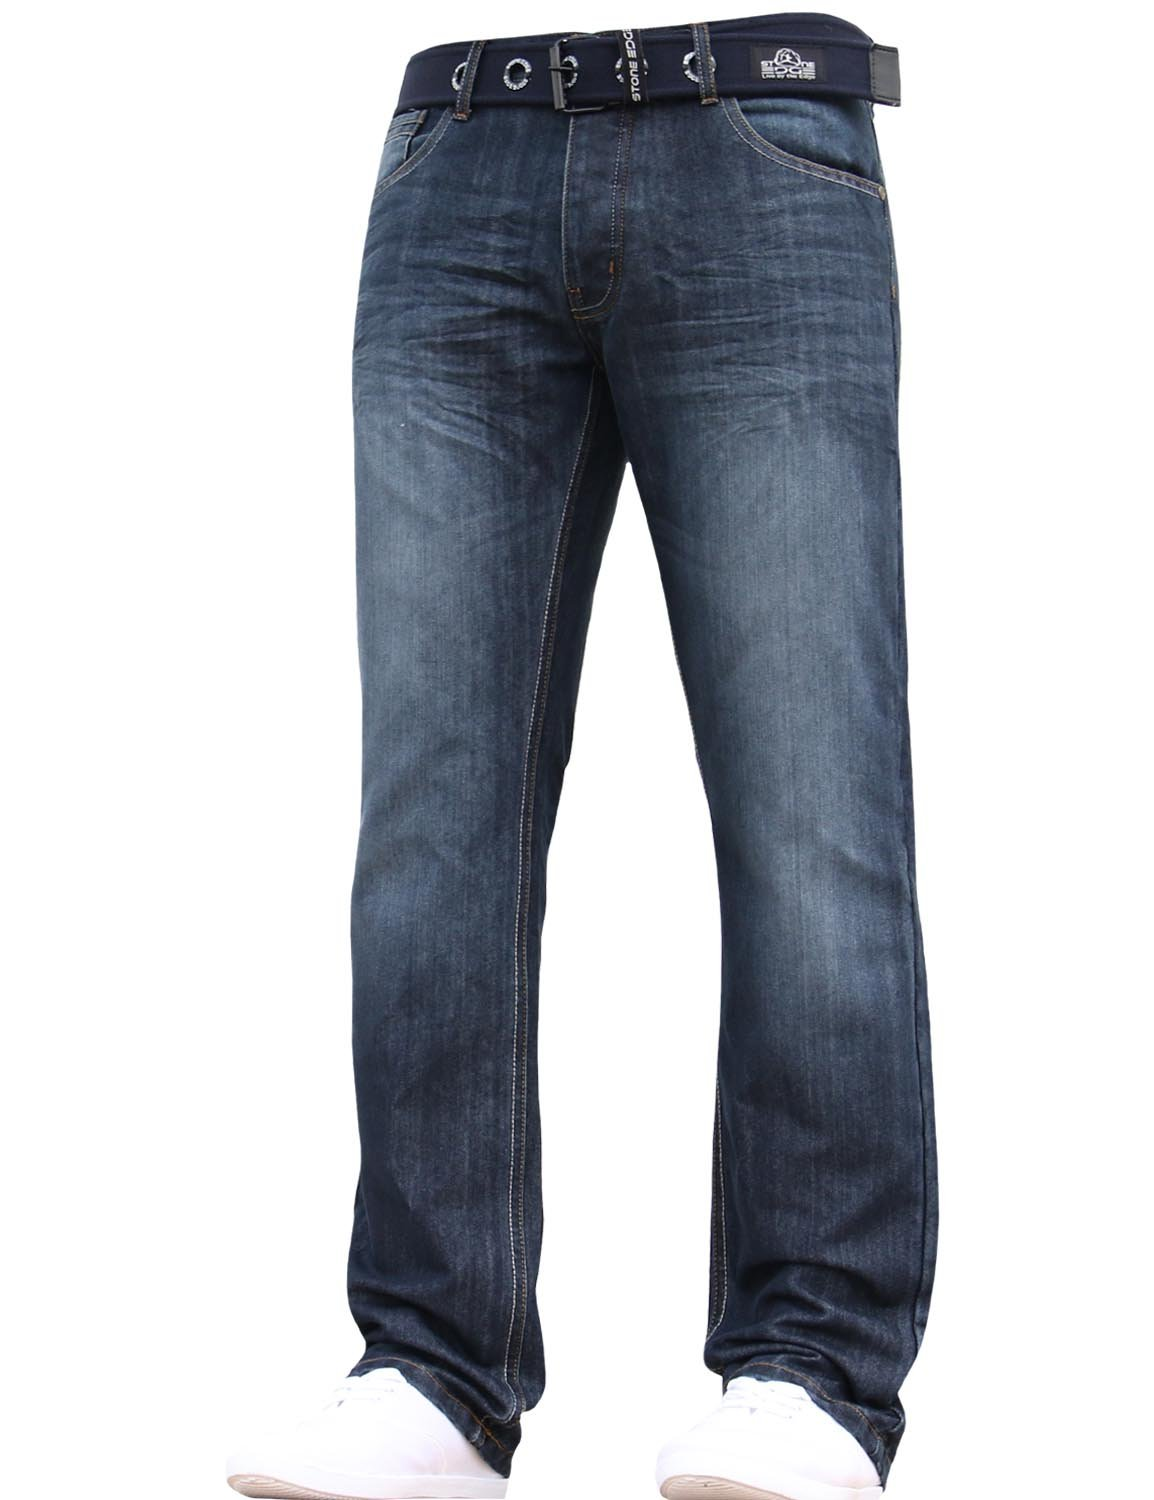 Stone Edge Mens Designer Straight Regular Denim Jeans Pants All Waist Leg Sizes